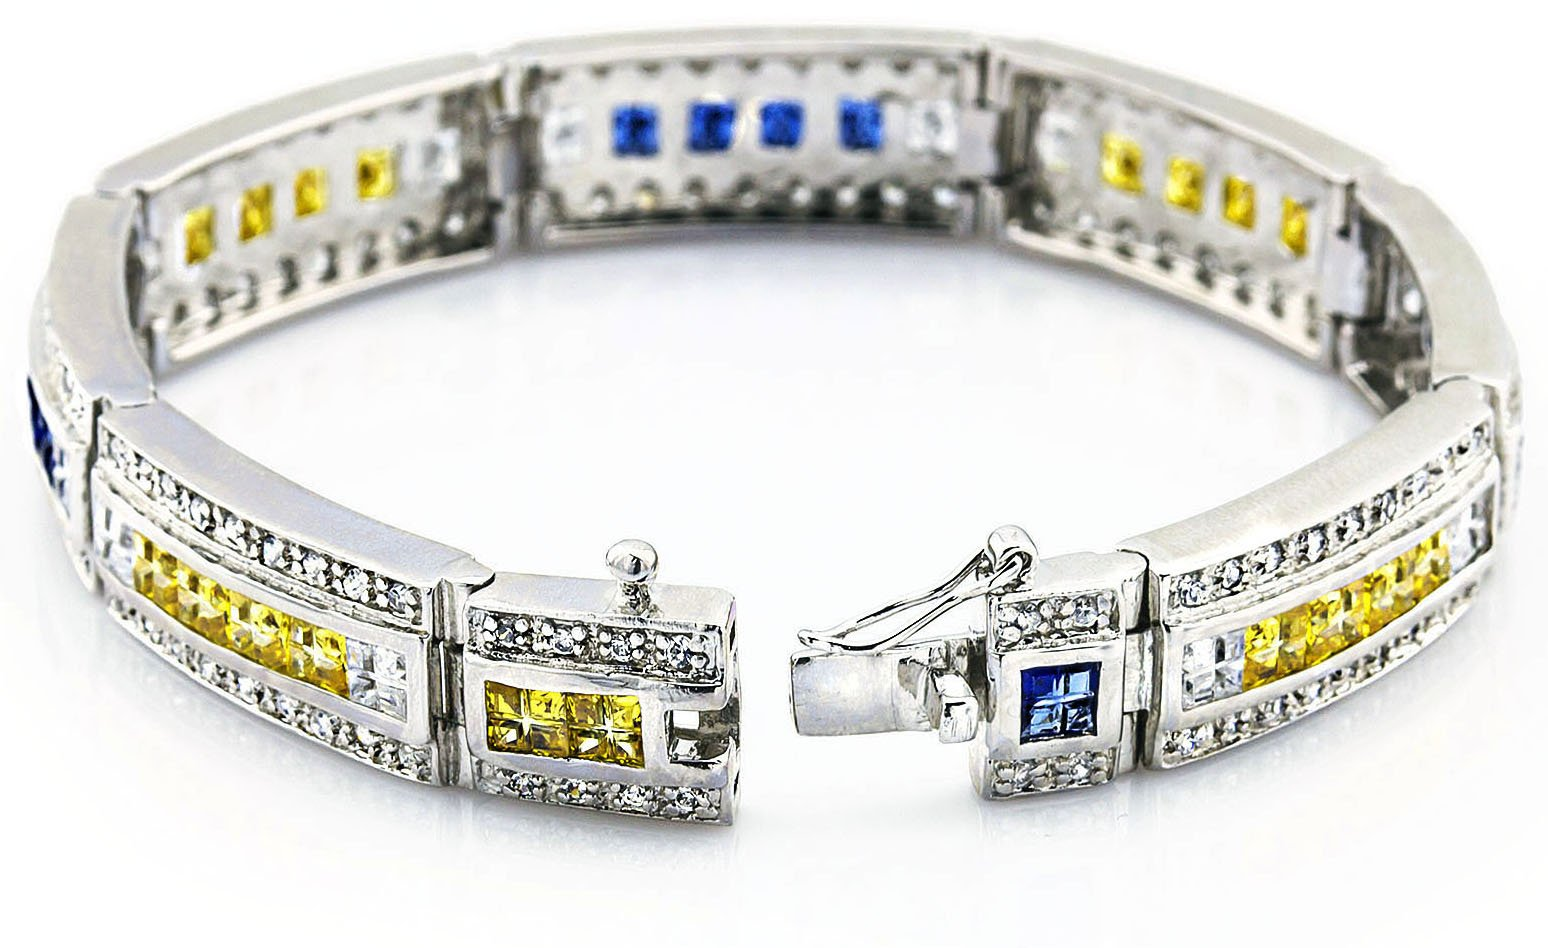 Men's Sterling Silver .925 Bracelet with Canary Yellow, Azure Blue and White Cubic Zirconia (CZ) Stones, Box Lock, Platinum Plated. 8'' or 9'' By Sterling Manufacturers by Sterling Manufacturers (Image #3)